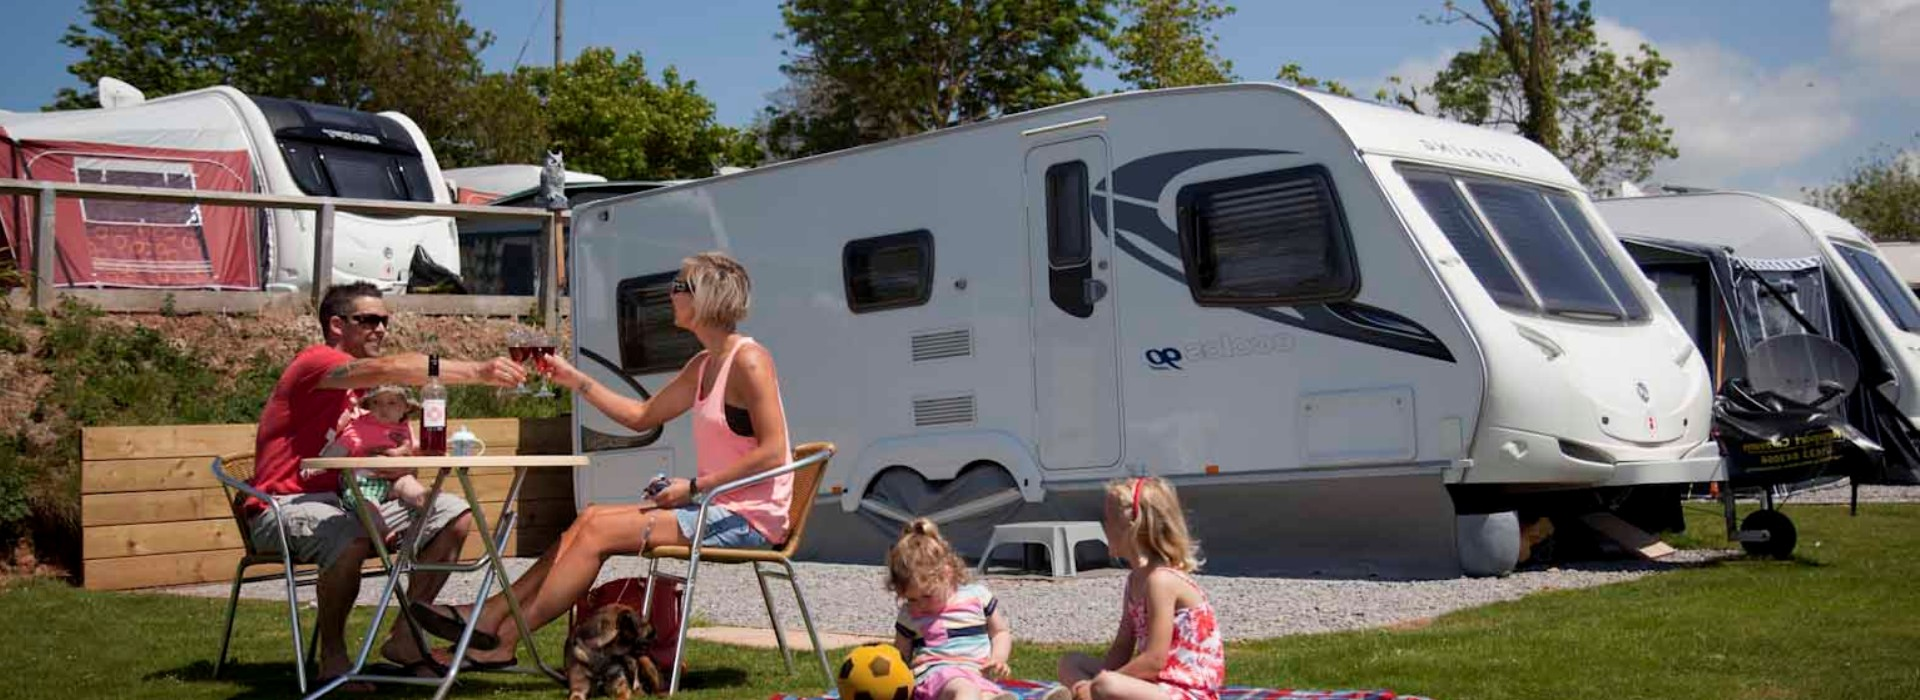 2019 Seasonal Pitches Holiday Offers Ladram Bay Holiday Park